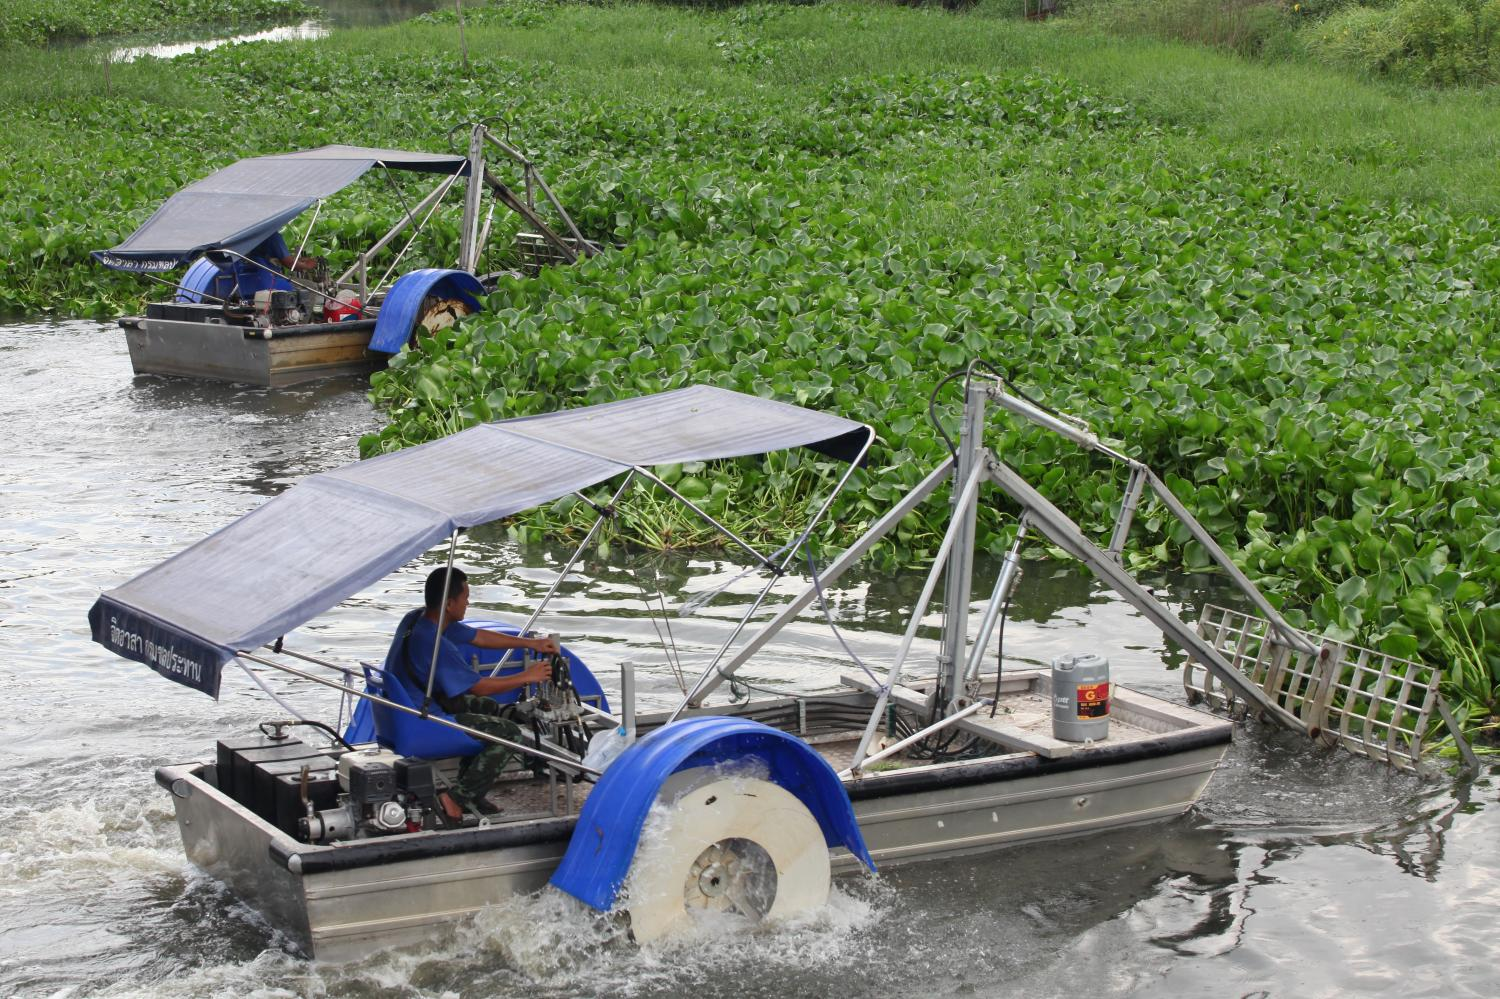 Workers harvest water hyacinth with a converted boat in Khlong Luang district of Pathum Thani. More such boats will be deployed along the area's waterways to control the aquatic weed.Arnun Chonmahatrakool